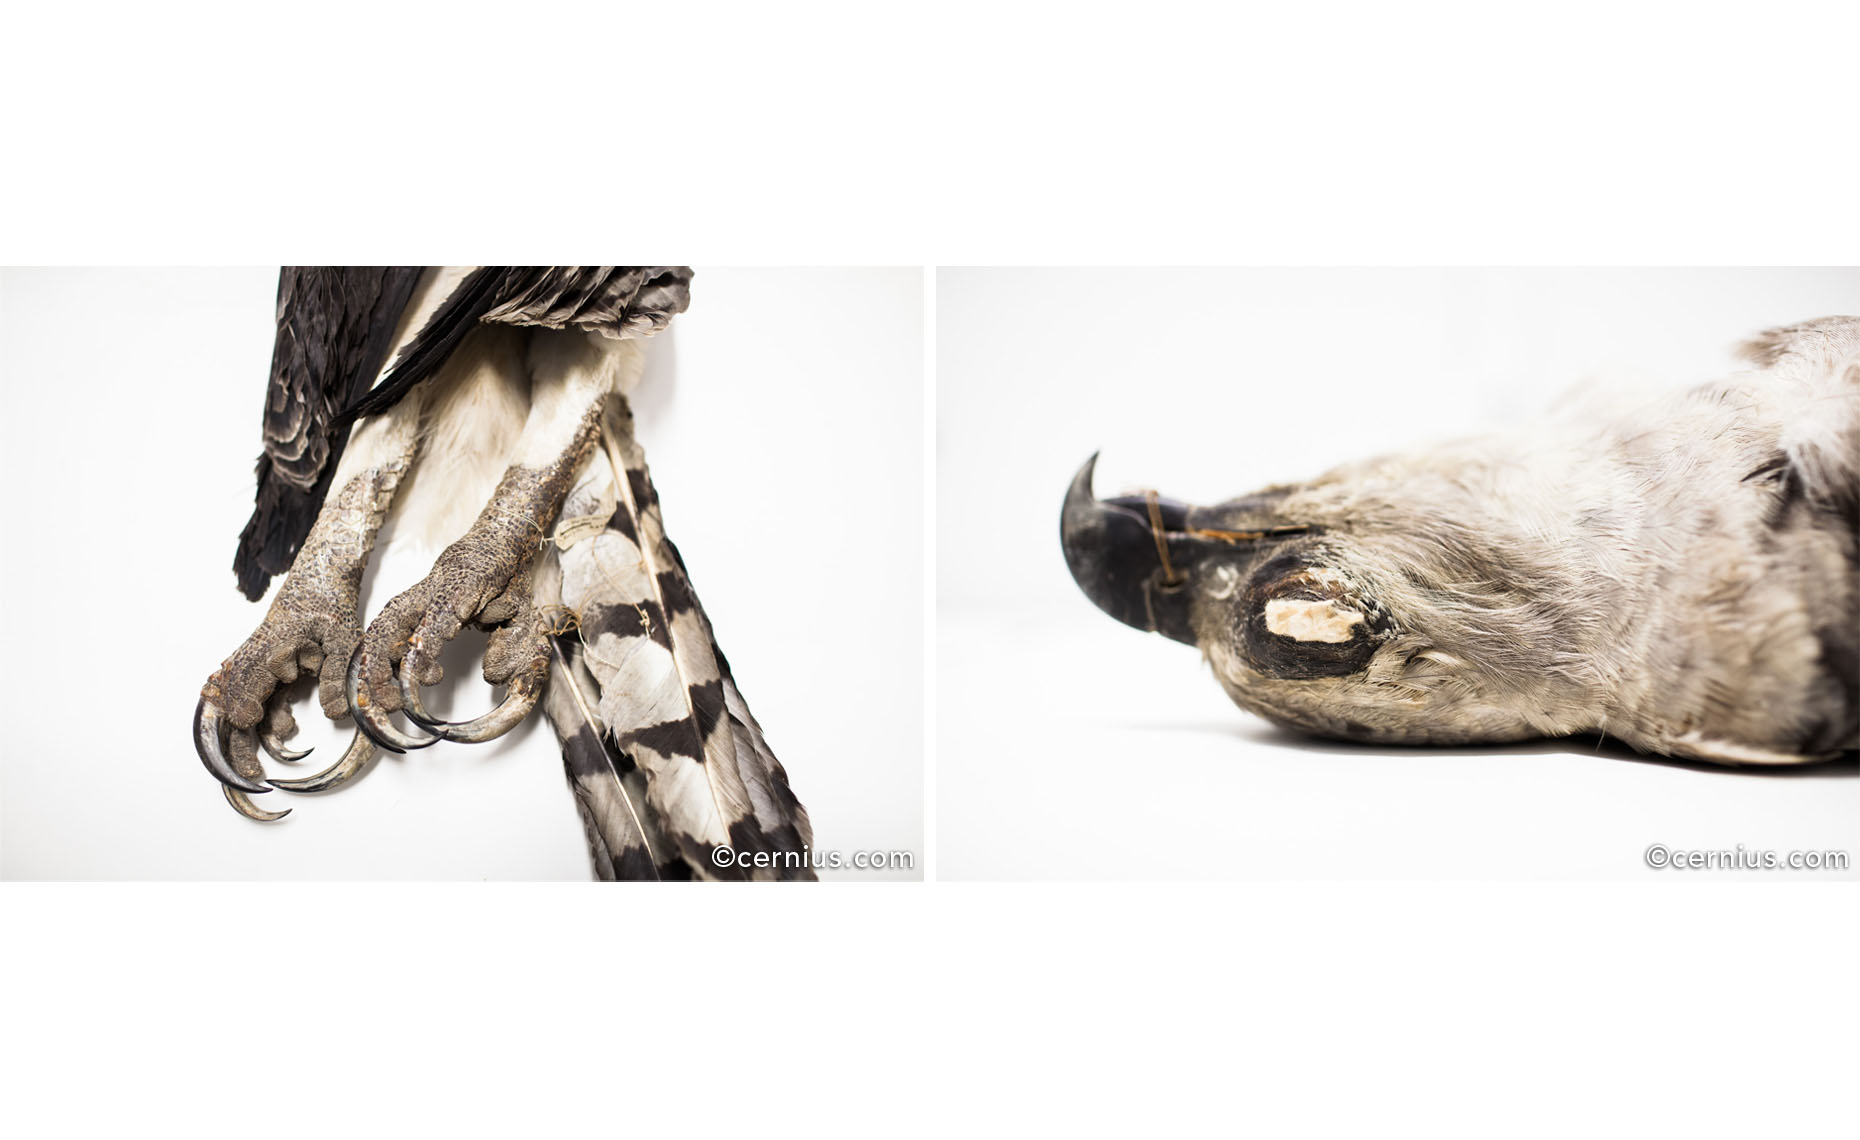 Natural History Stillness | Juozas Cernius